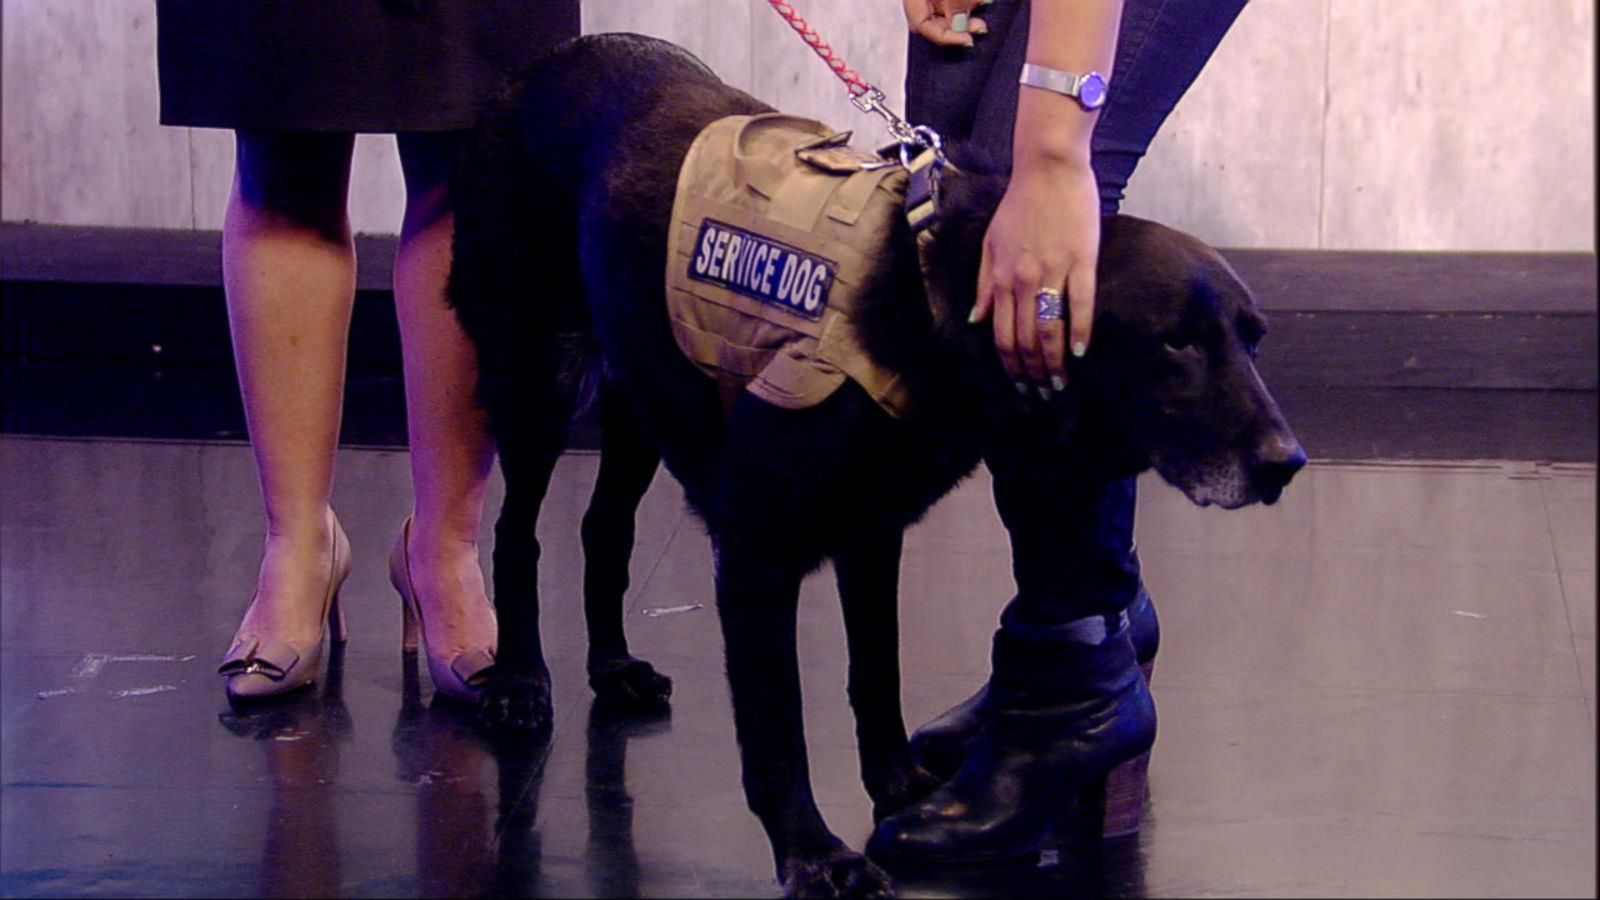 VIDEO: This War Hero is a Bomb Detector With Paws